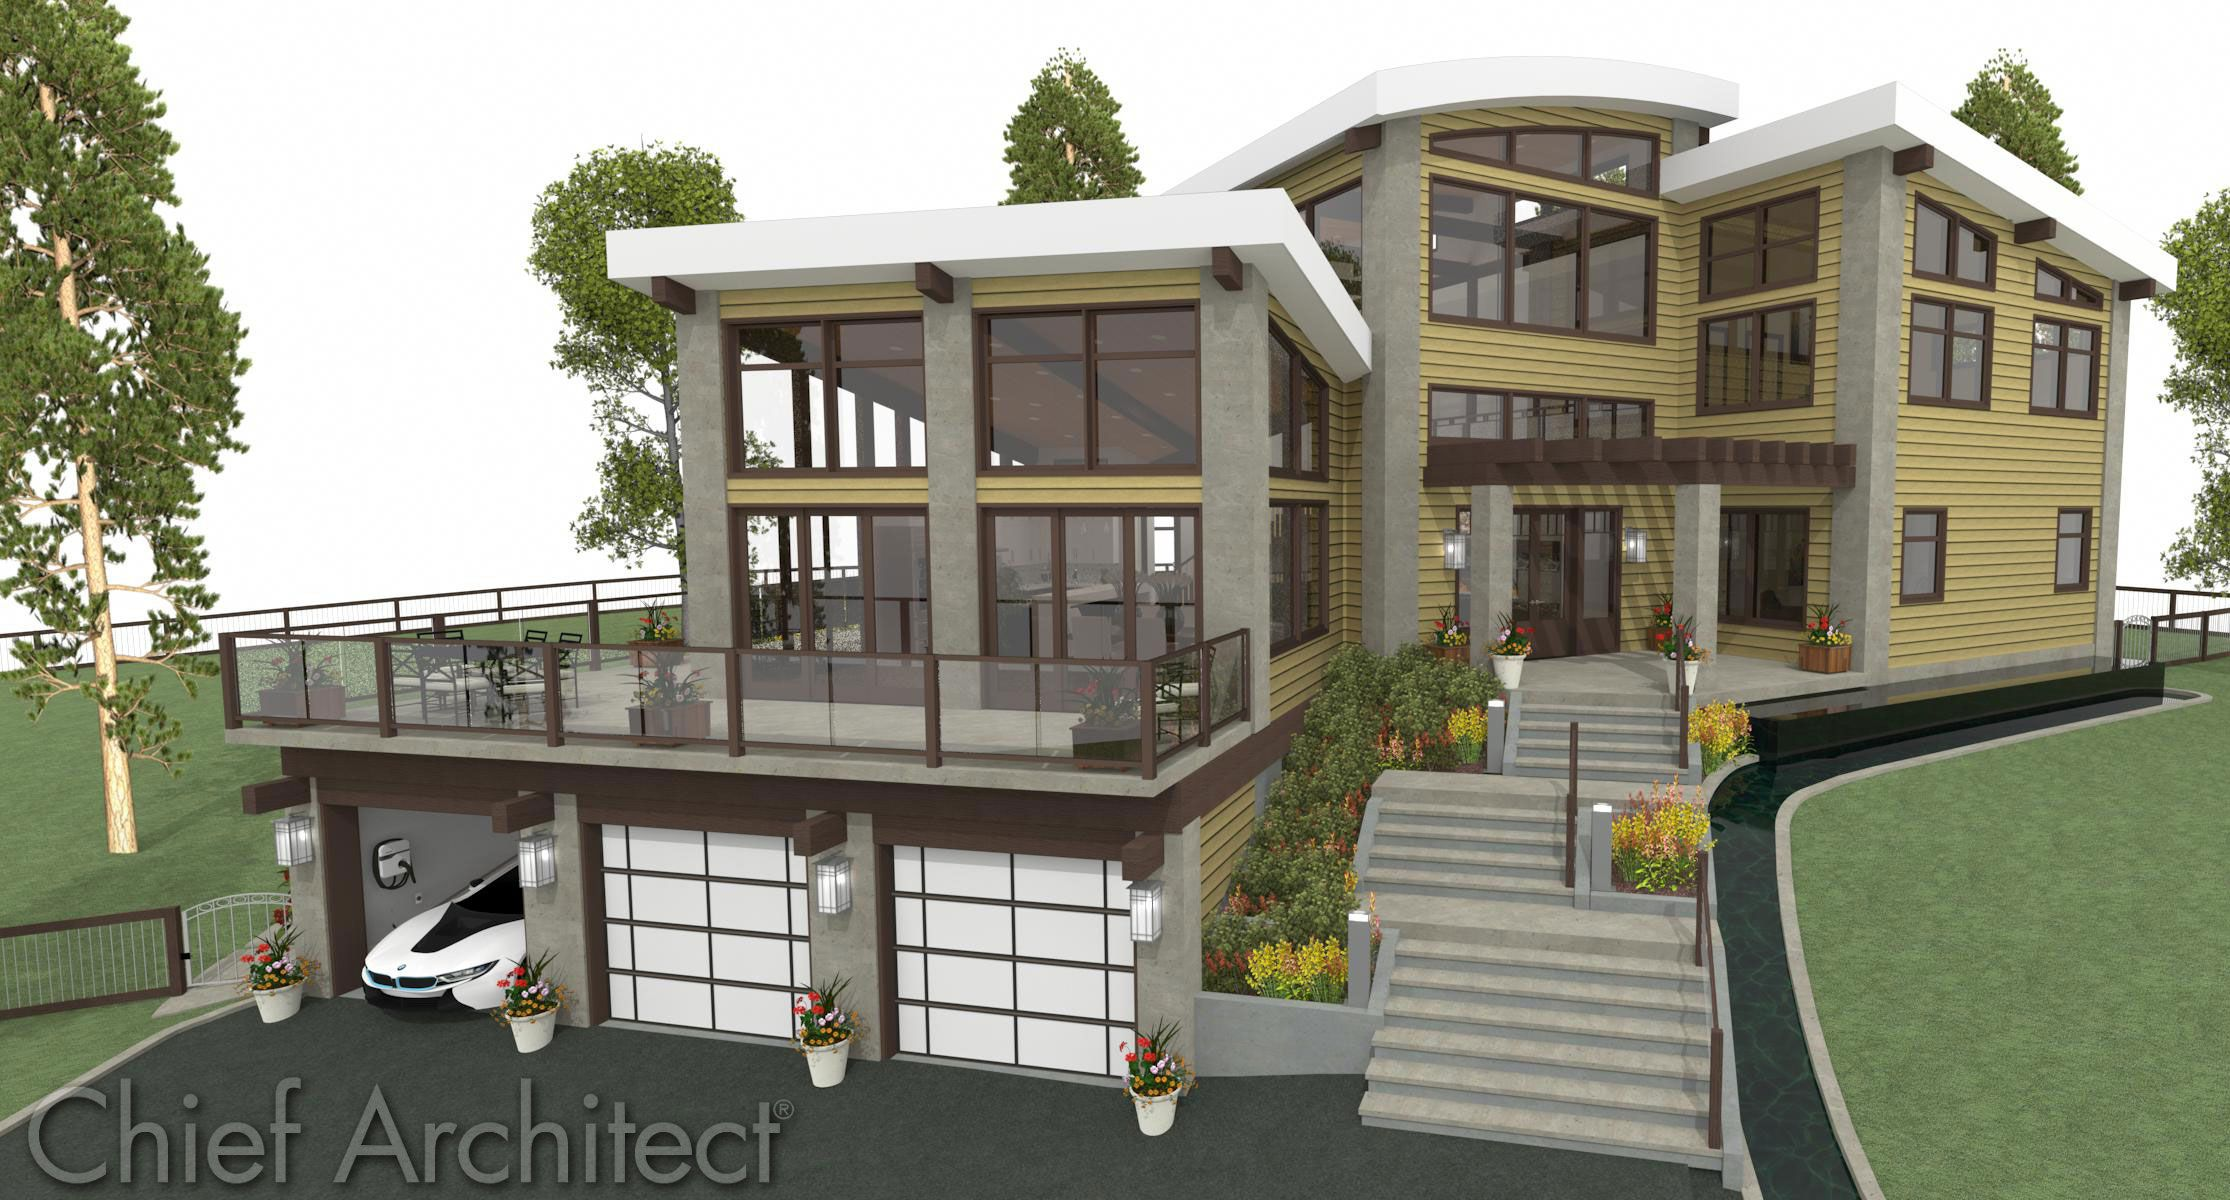 Genial House · Chief Architect Home Design Software ...